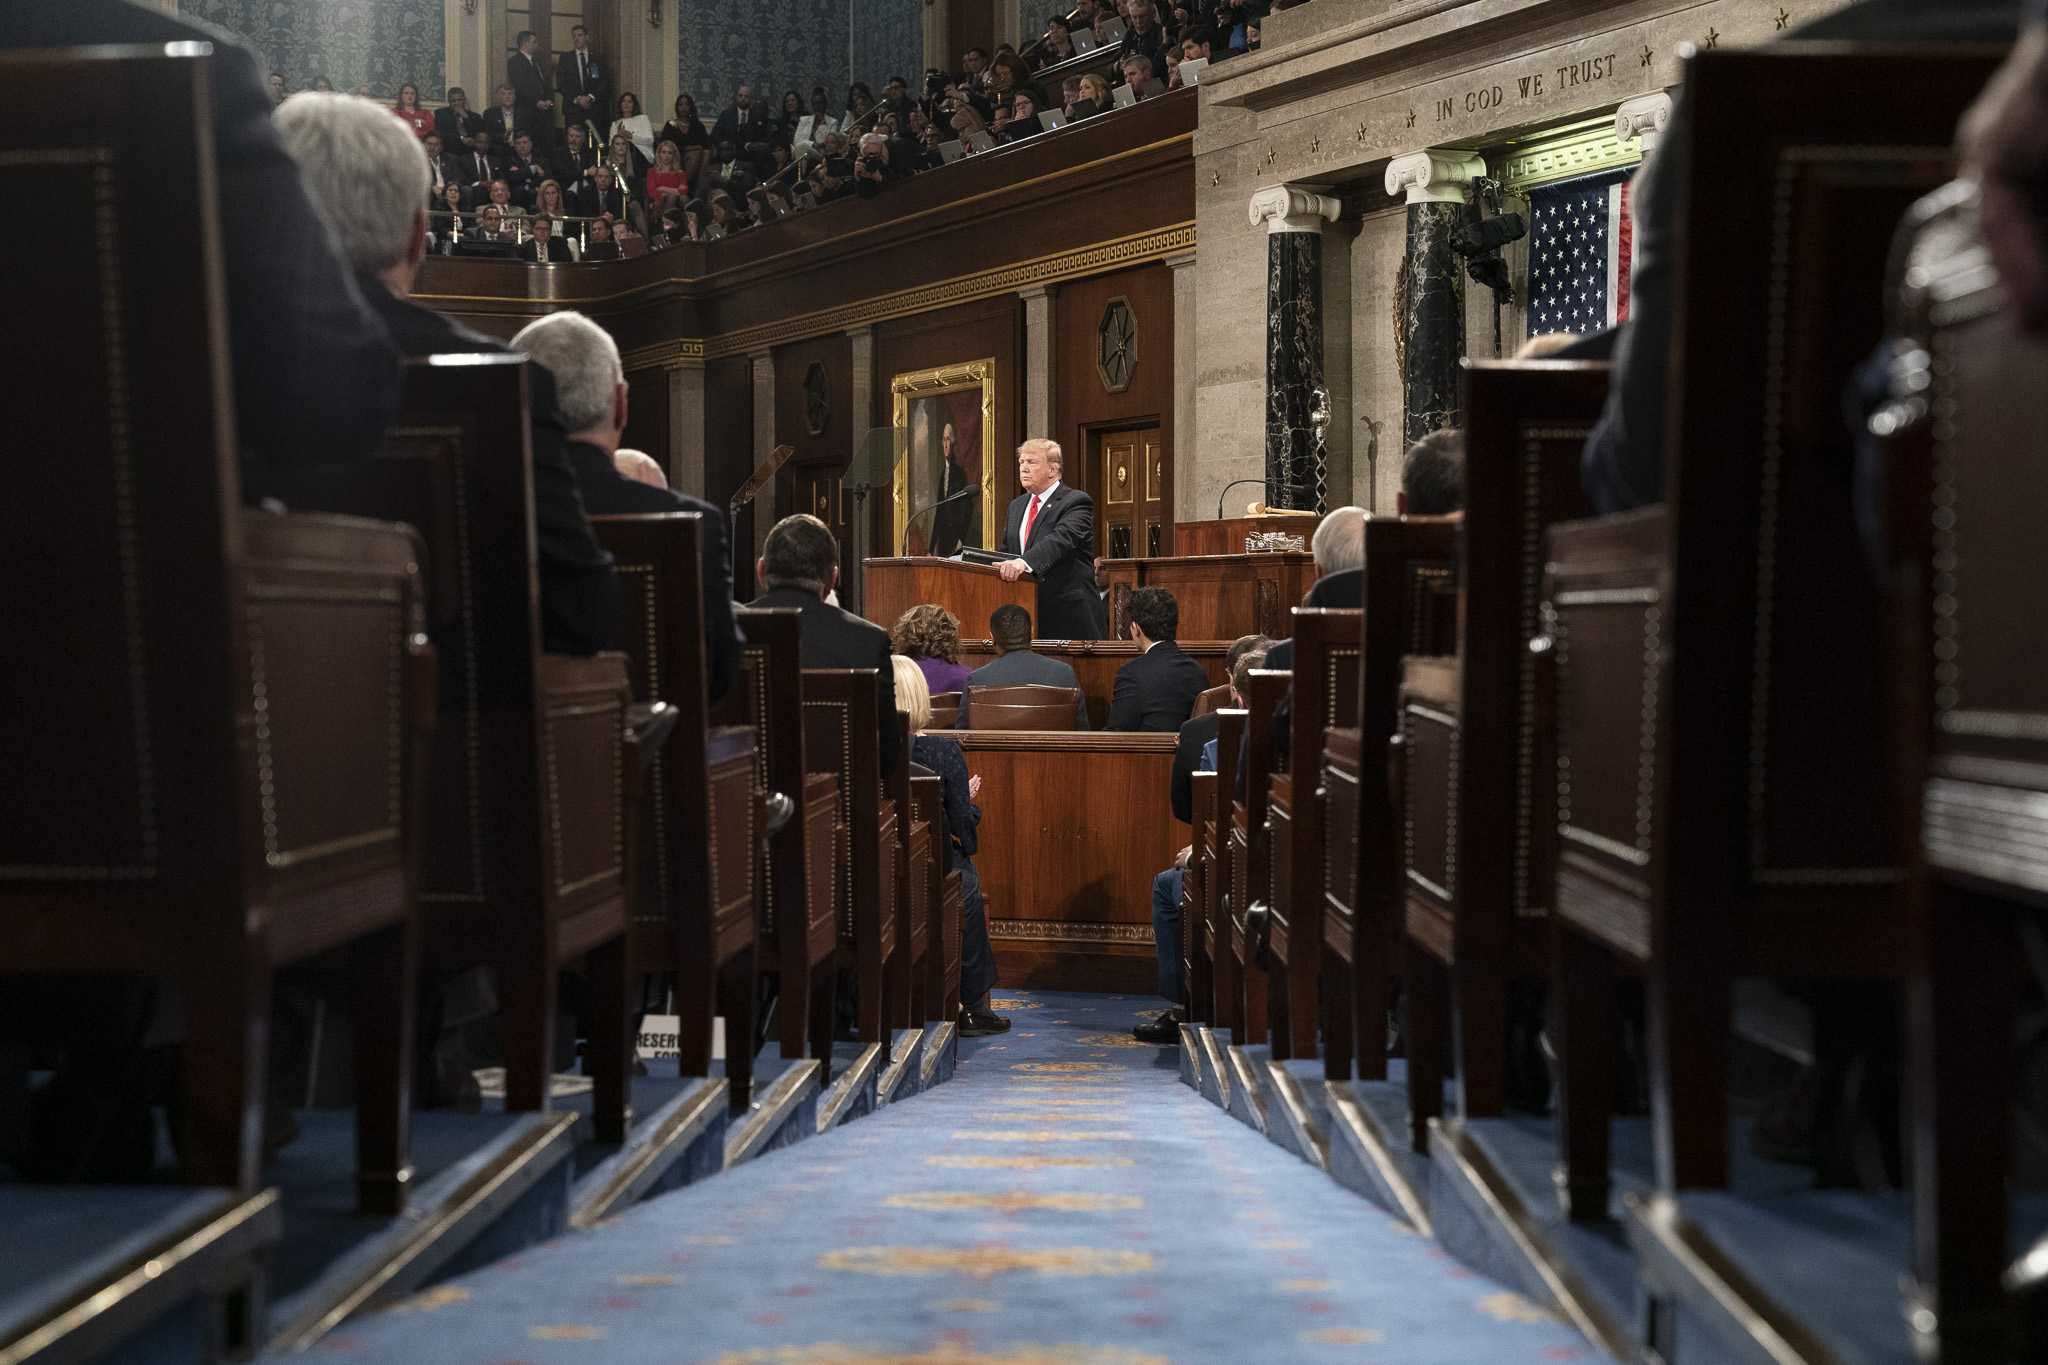 OPINION: The State of the Union address doesn't matter